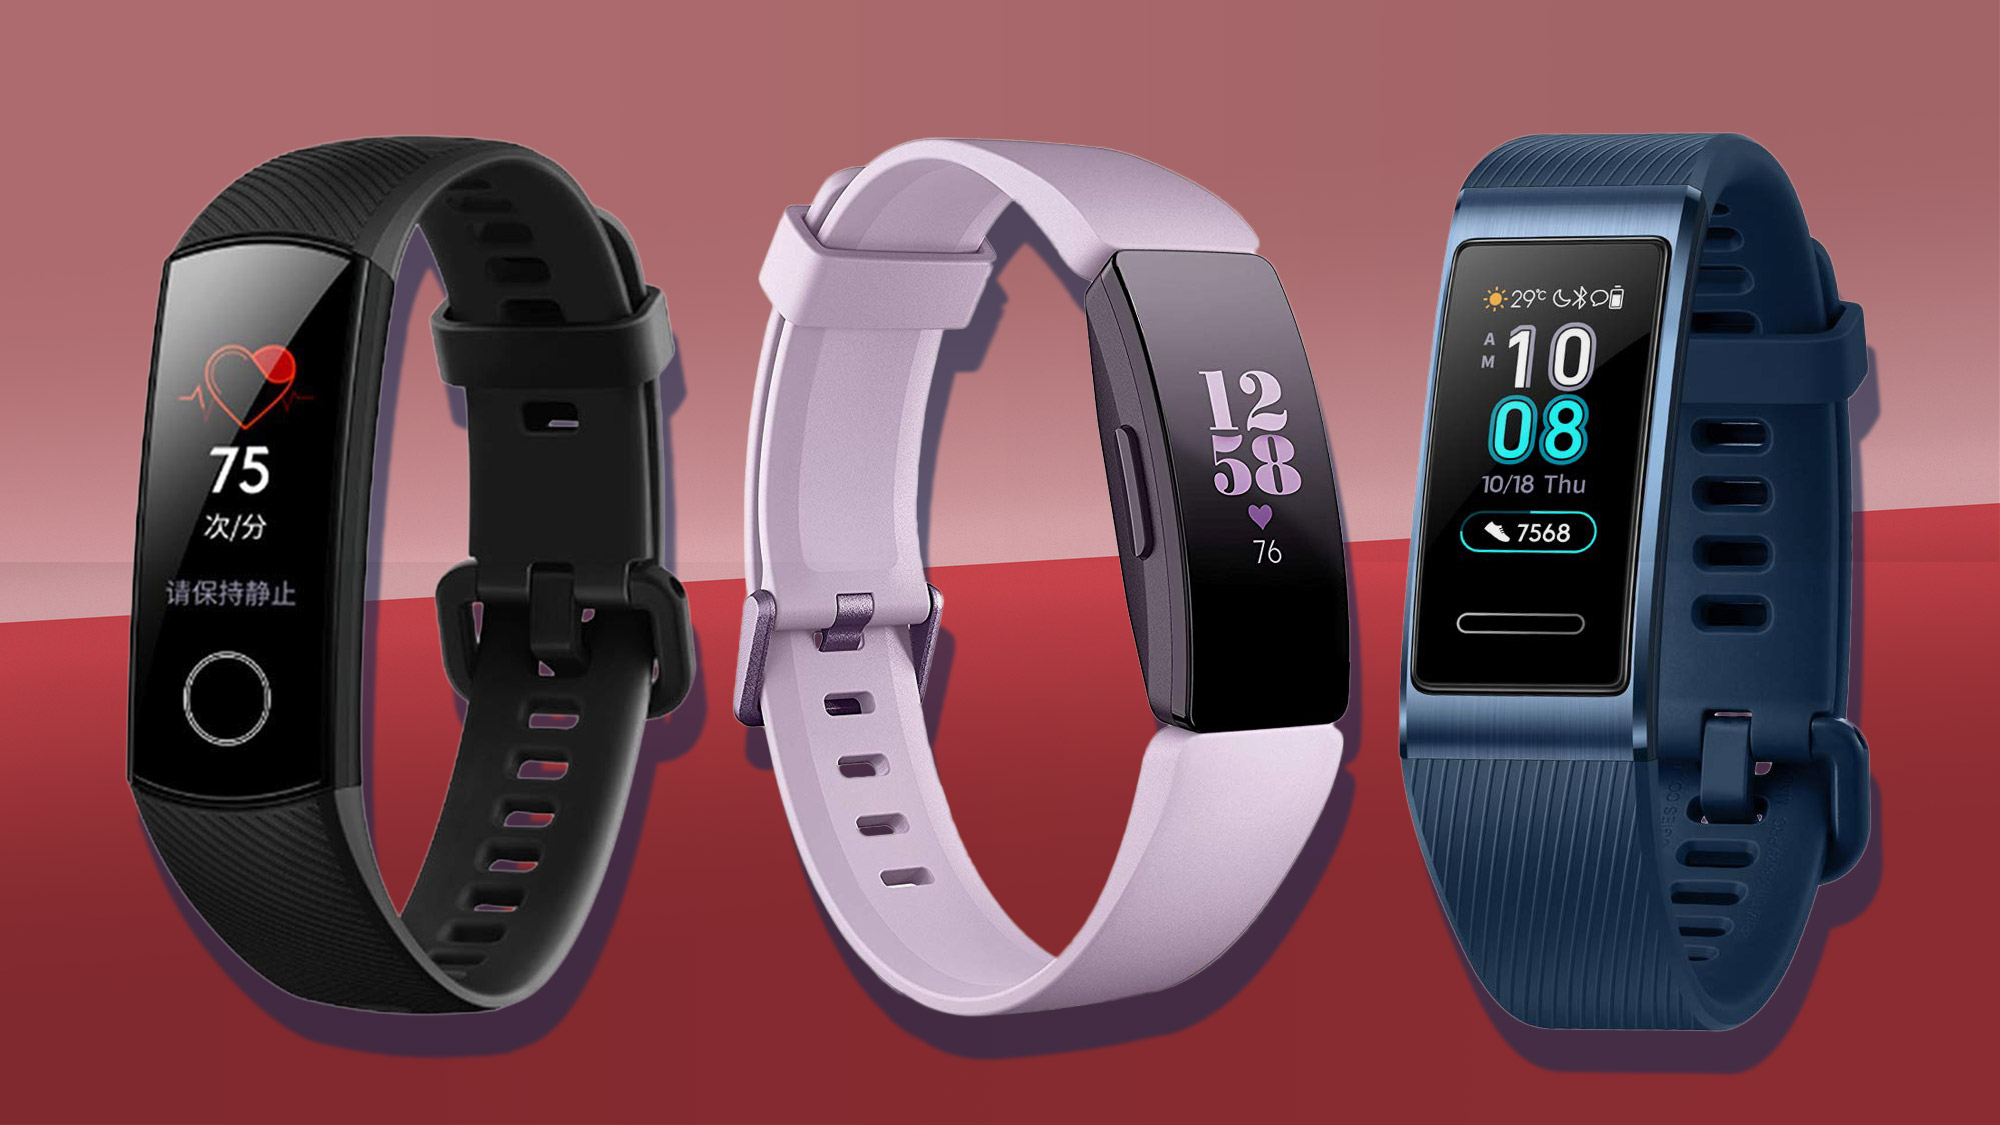 Best Fitness Watches 2021 The best cheap fitness trackers 2020: the top affordable sport